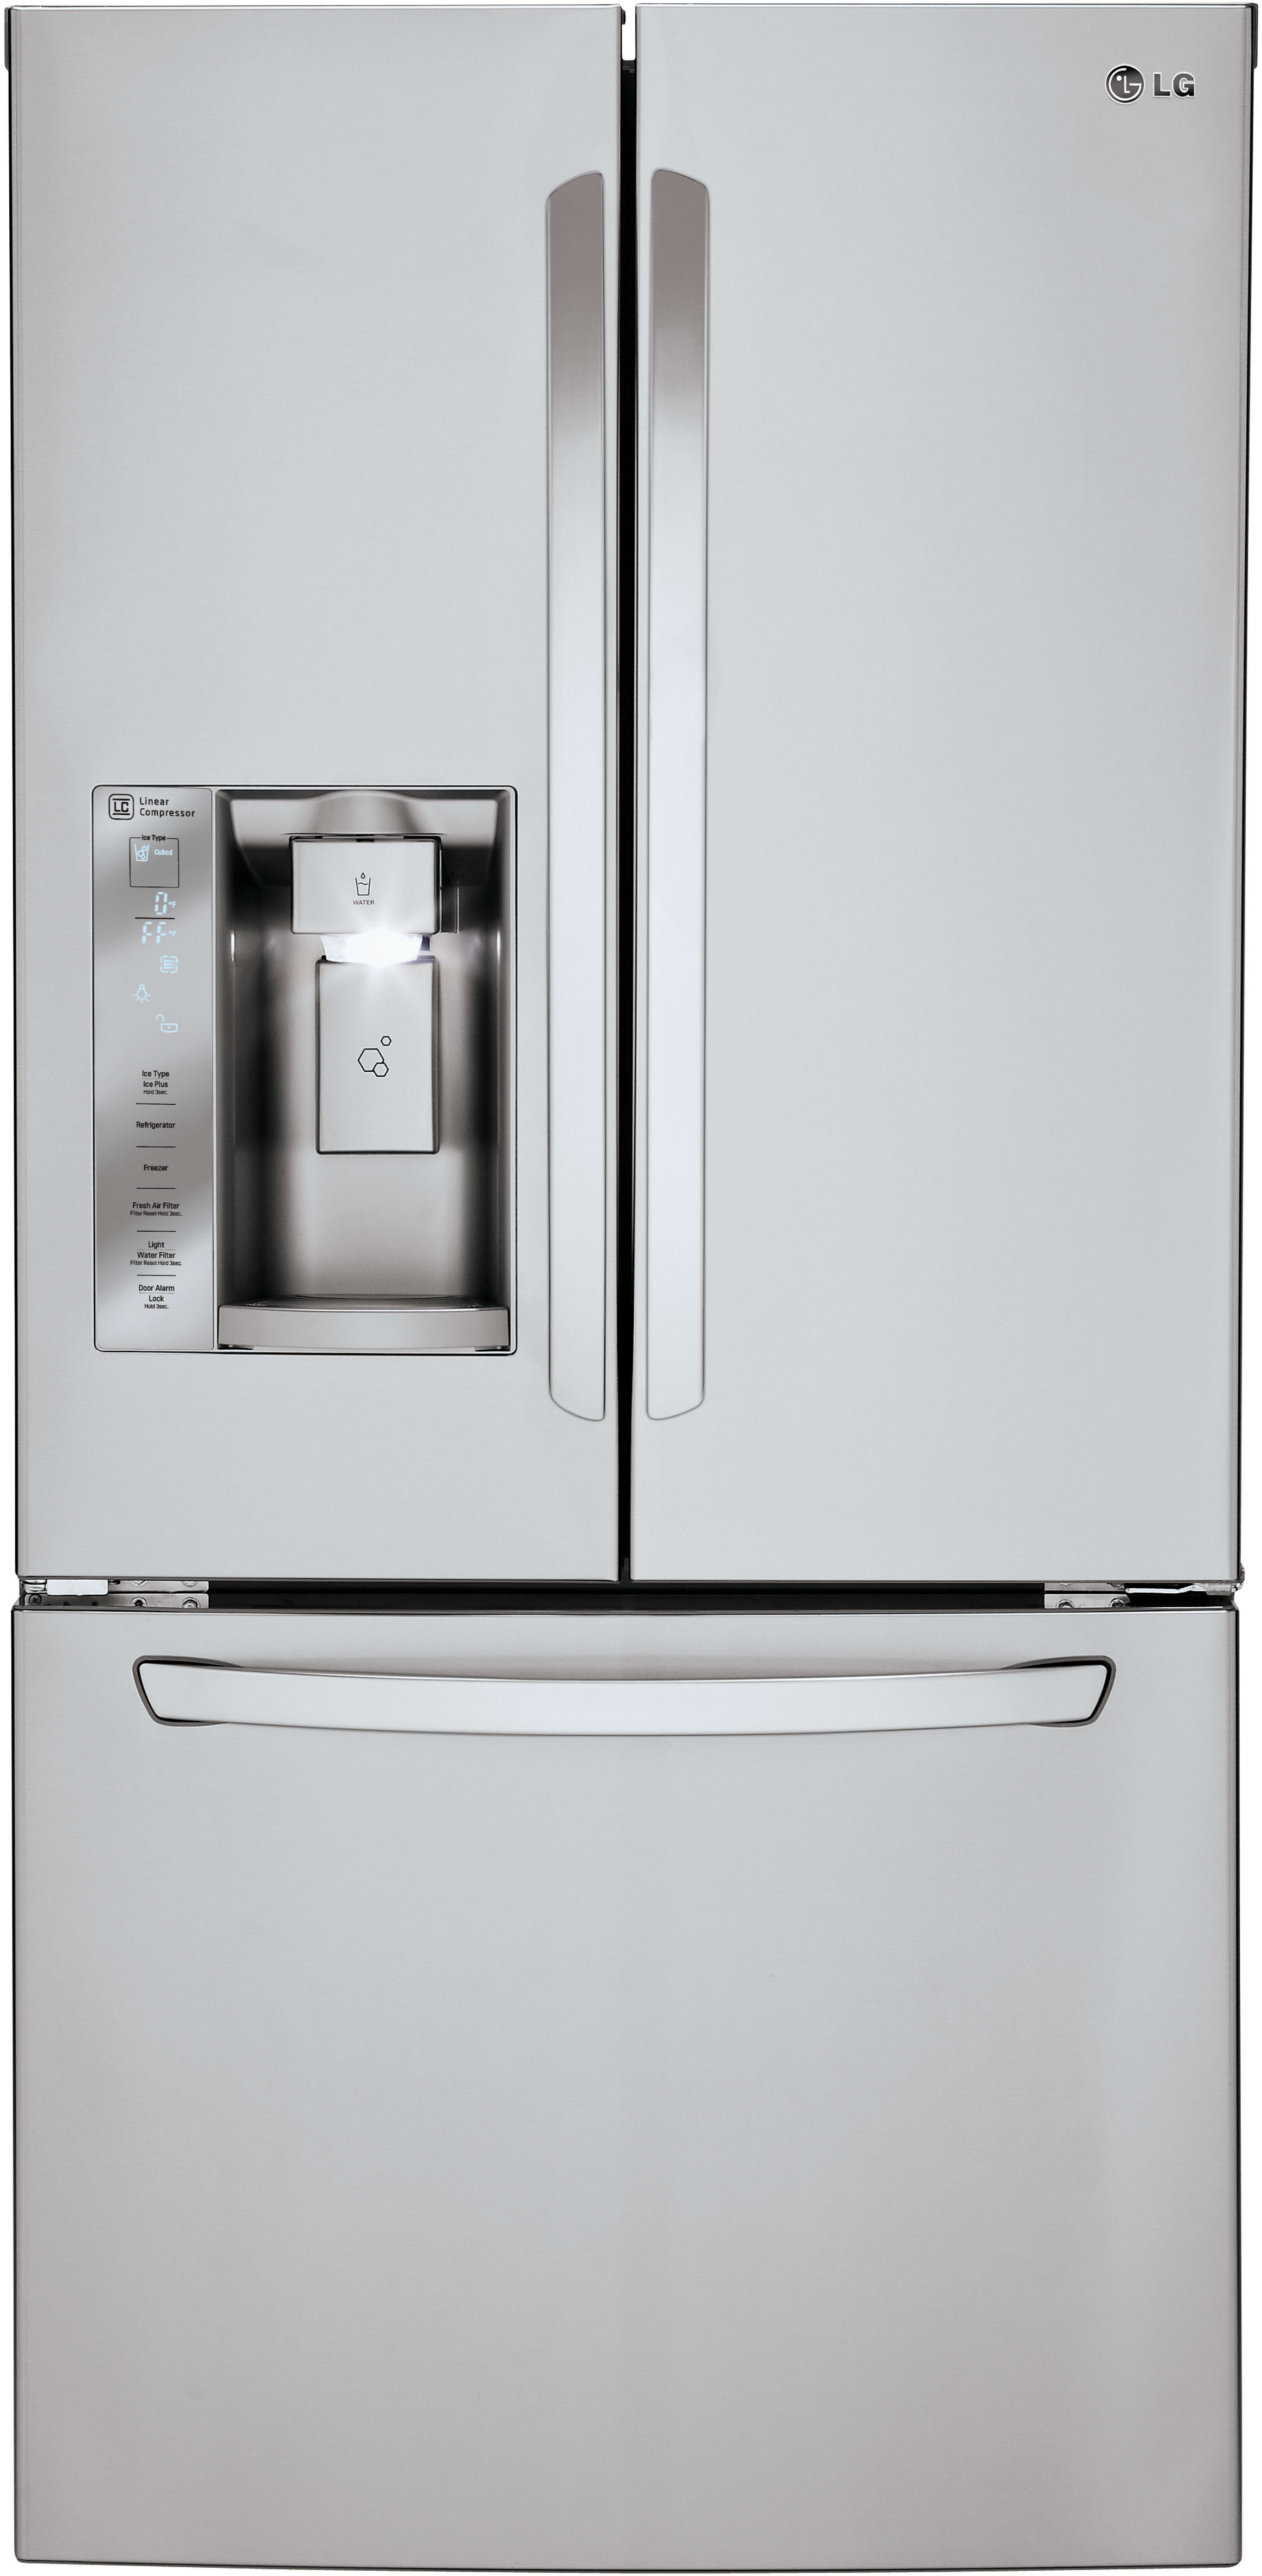 LG LFXS S 33 Inch French Door Refrigerator with Slim SpacePlus